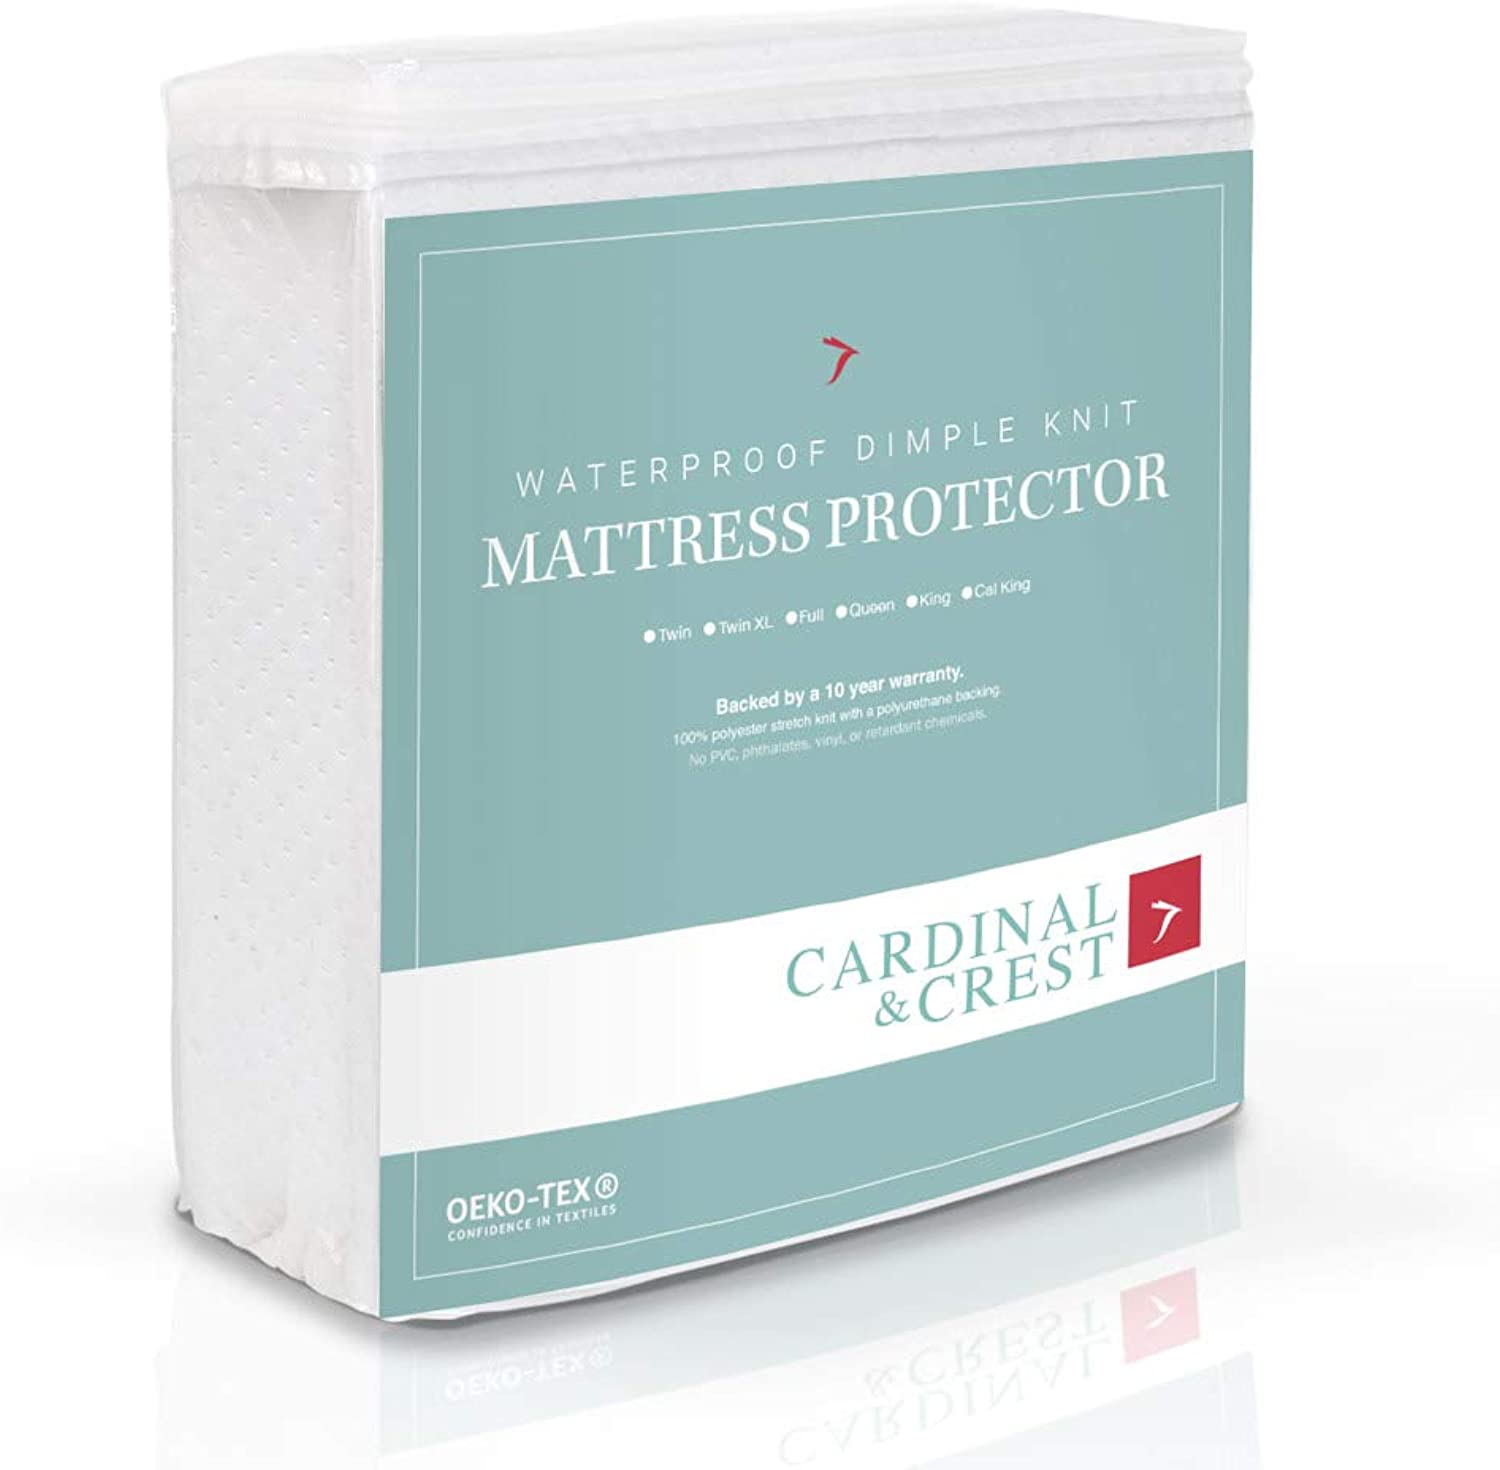 Cardinal & Crest Bed Predector - Hypoallergenic Vinyl Free Stretch Knit Mattress Pad - Dust Mite Resistant Covering - Cover Predects Bedding from Moisture Stains - Twin Size